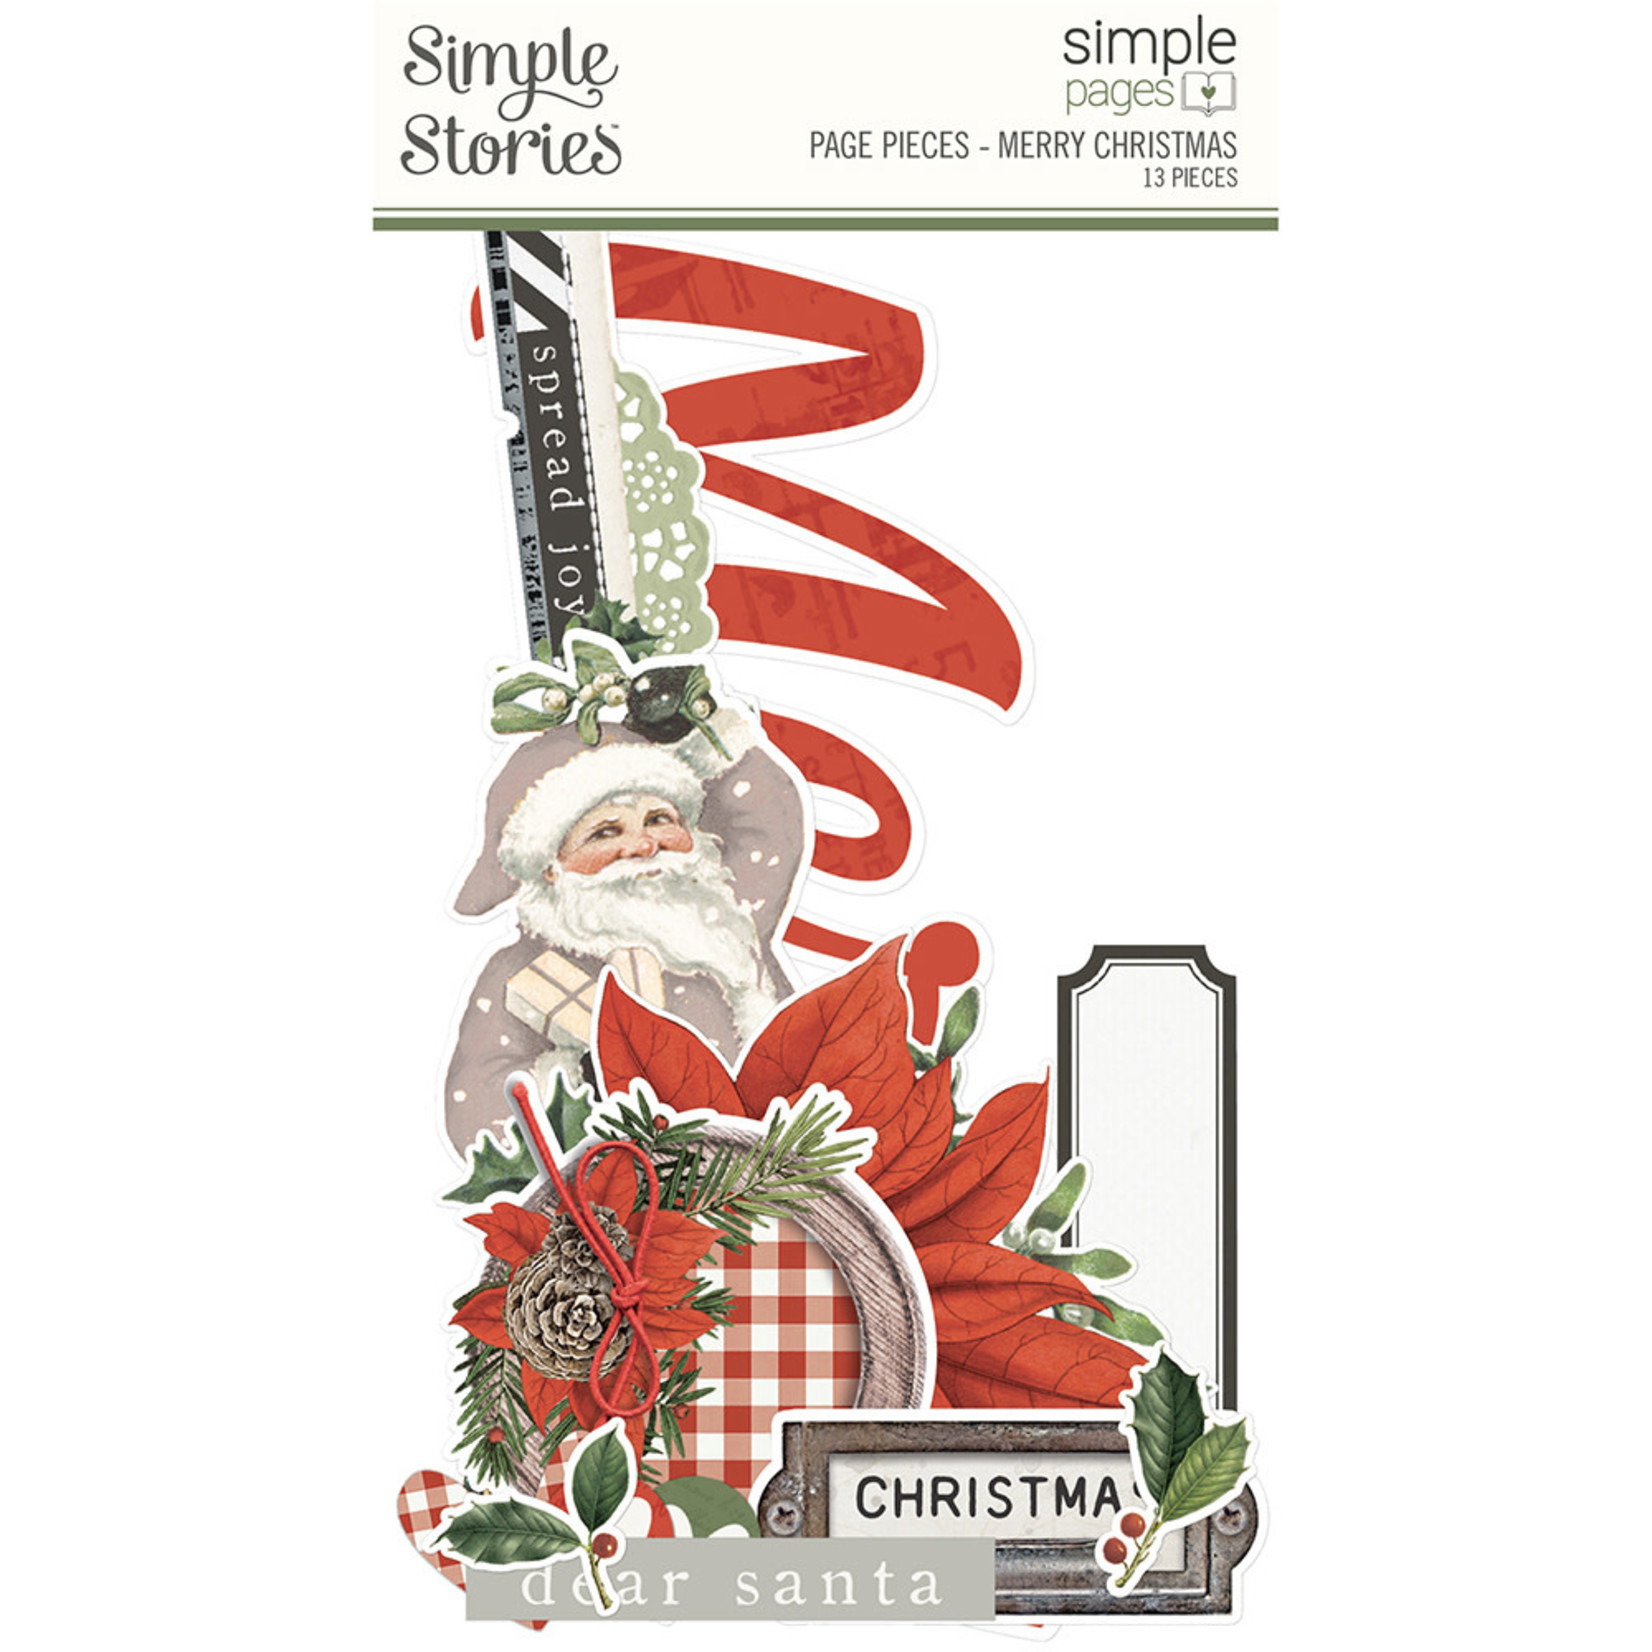 Simple Stories Simple Stories - Simple Pages - Page Pieces -  Merry Christmas